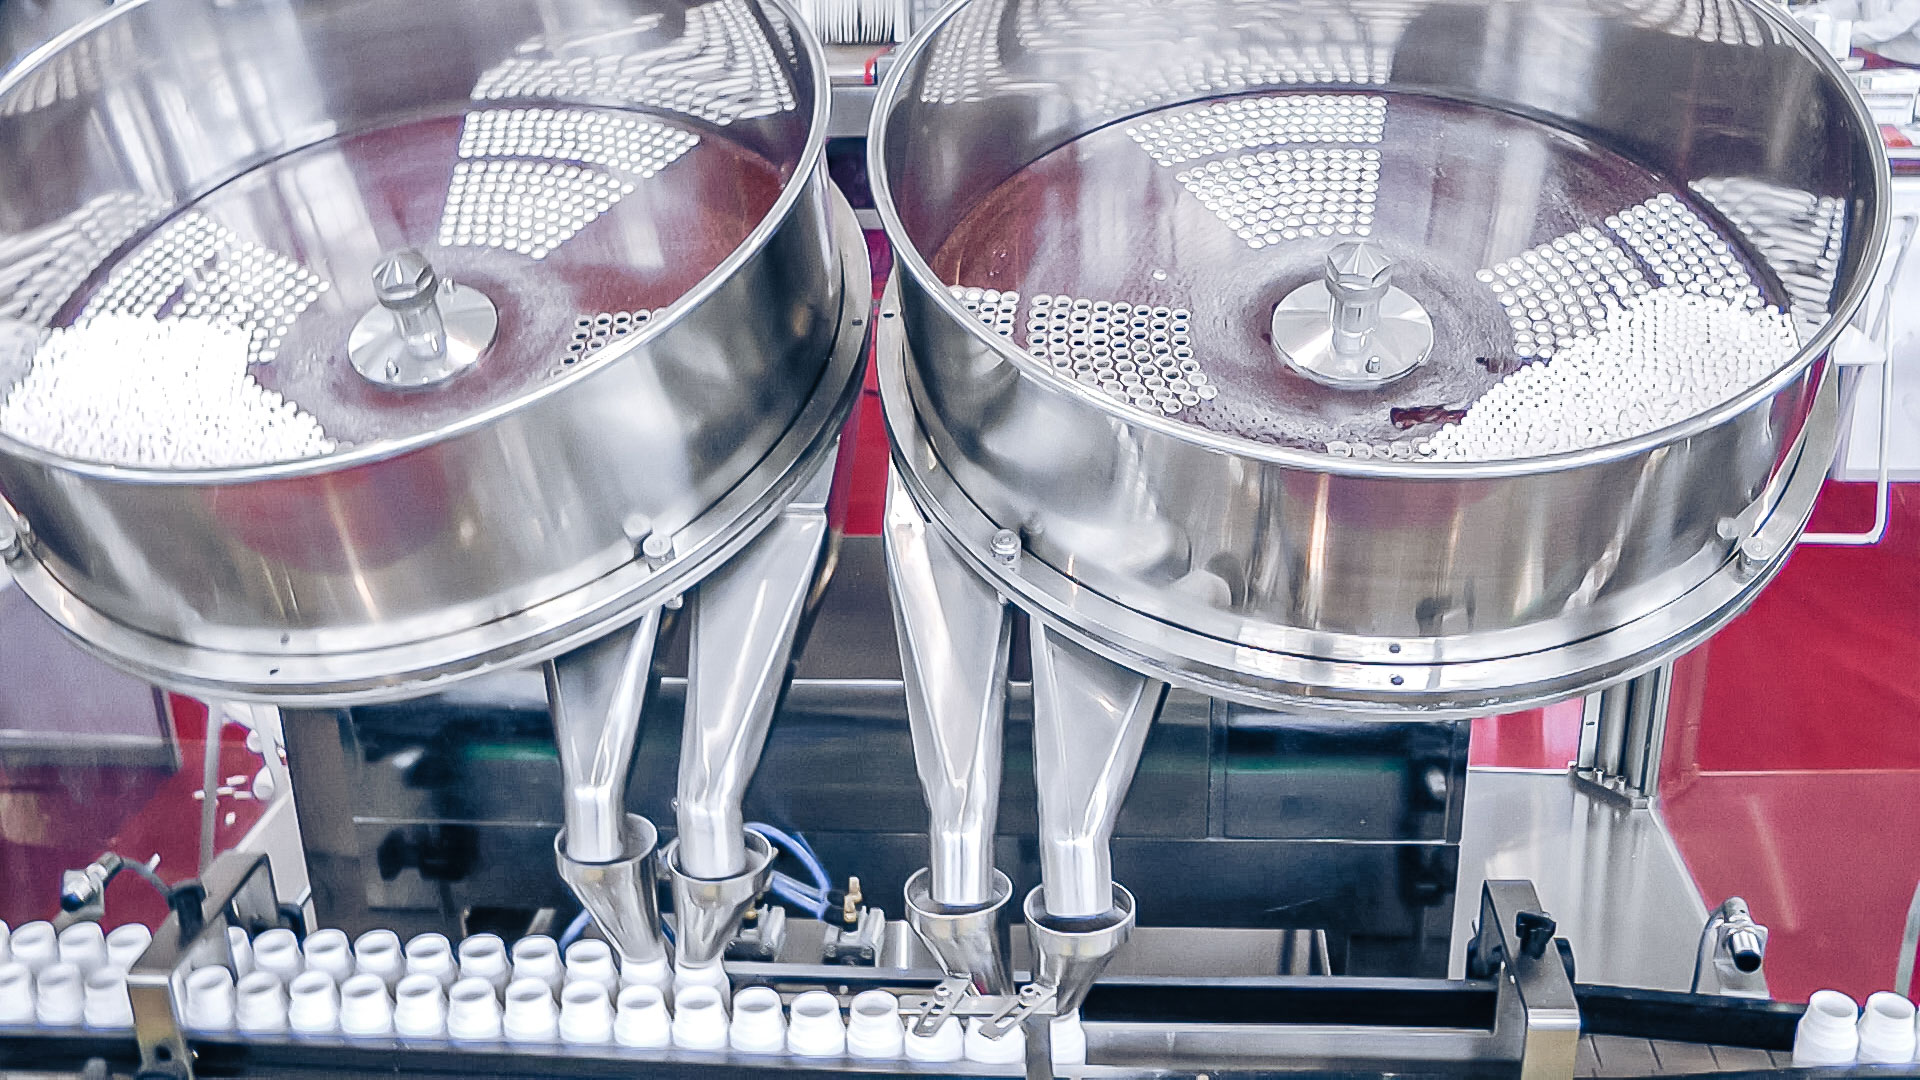 Automatic filling equipment for tablets and gelatin capsules in plastic bottles in pharmaceutical production